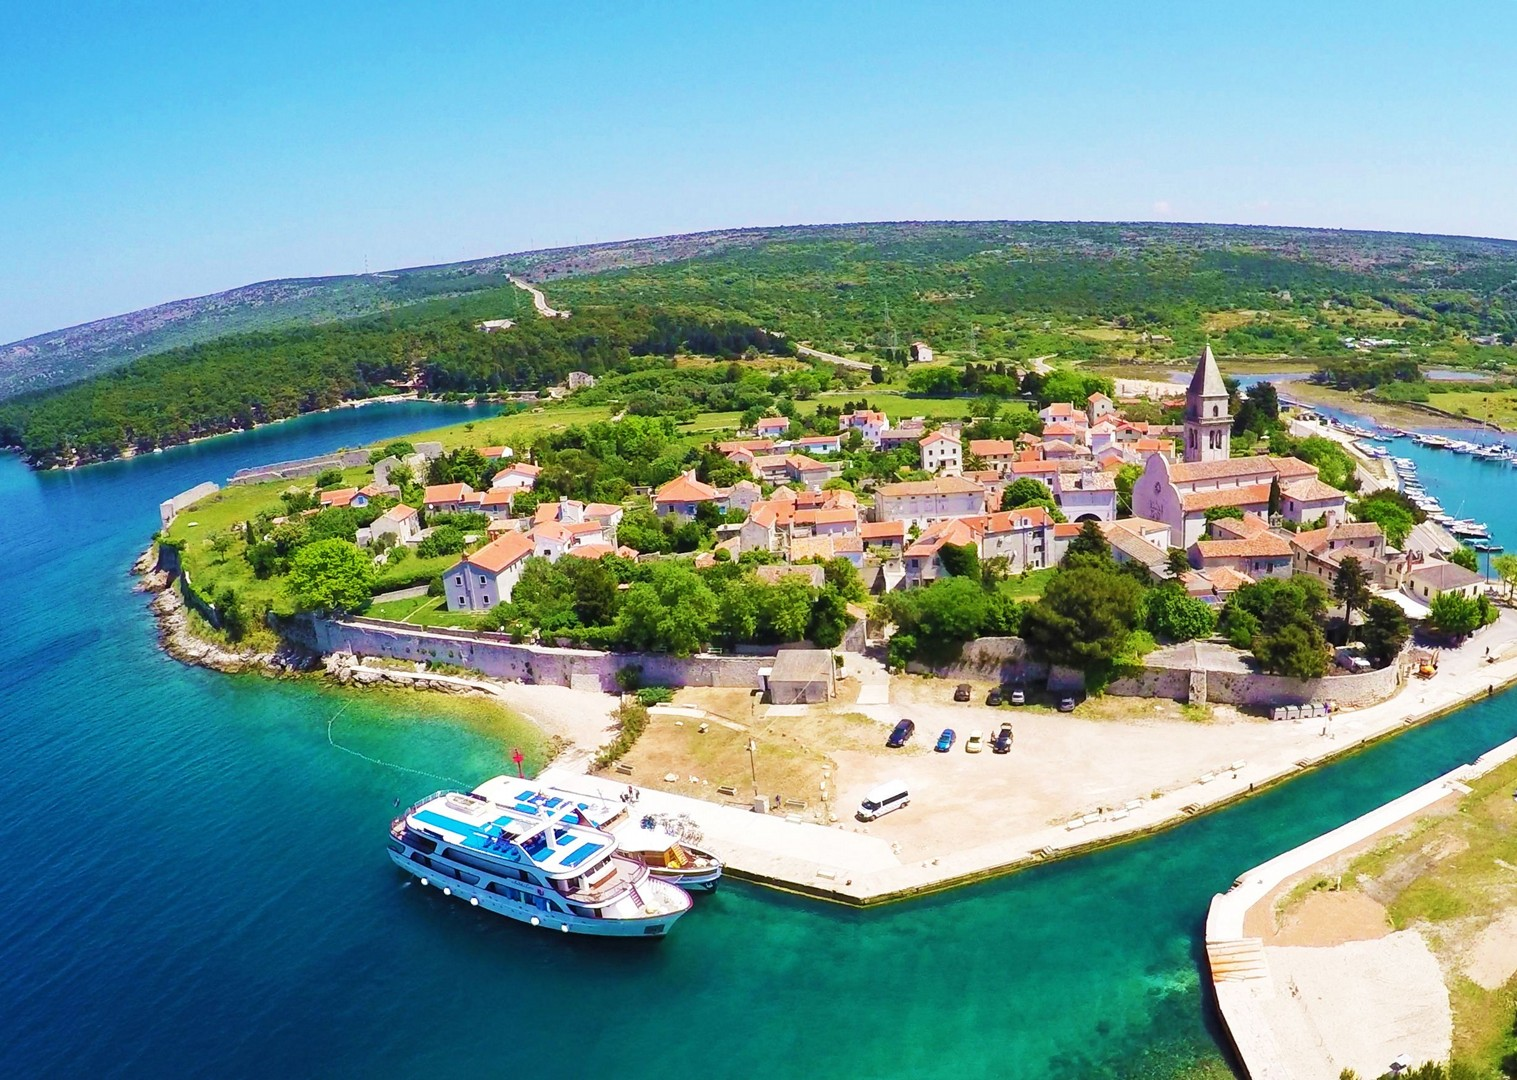 flower-island-of-molat-croatia-bike-and-boat-tour.jpg - NEW! Croatia - Kvarner Bay Plus - Leisure Cycling